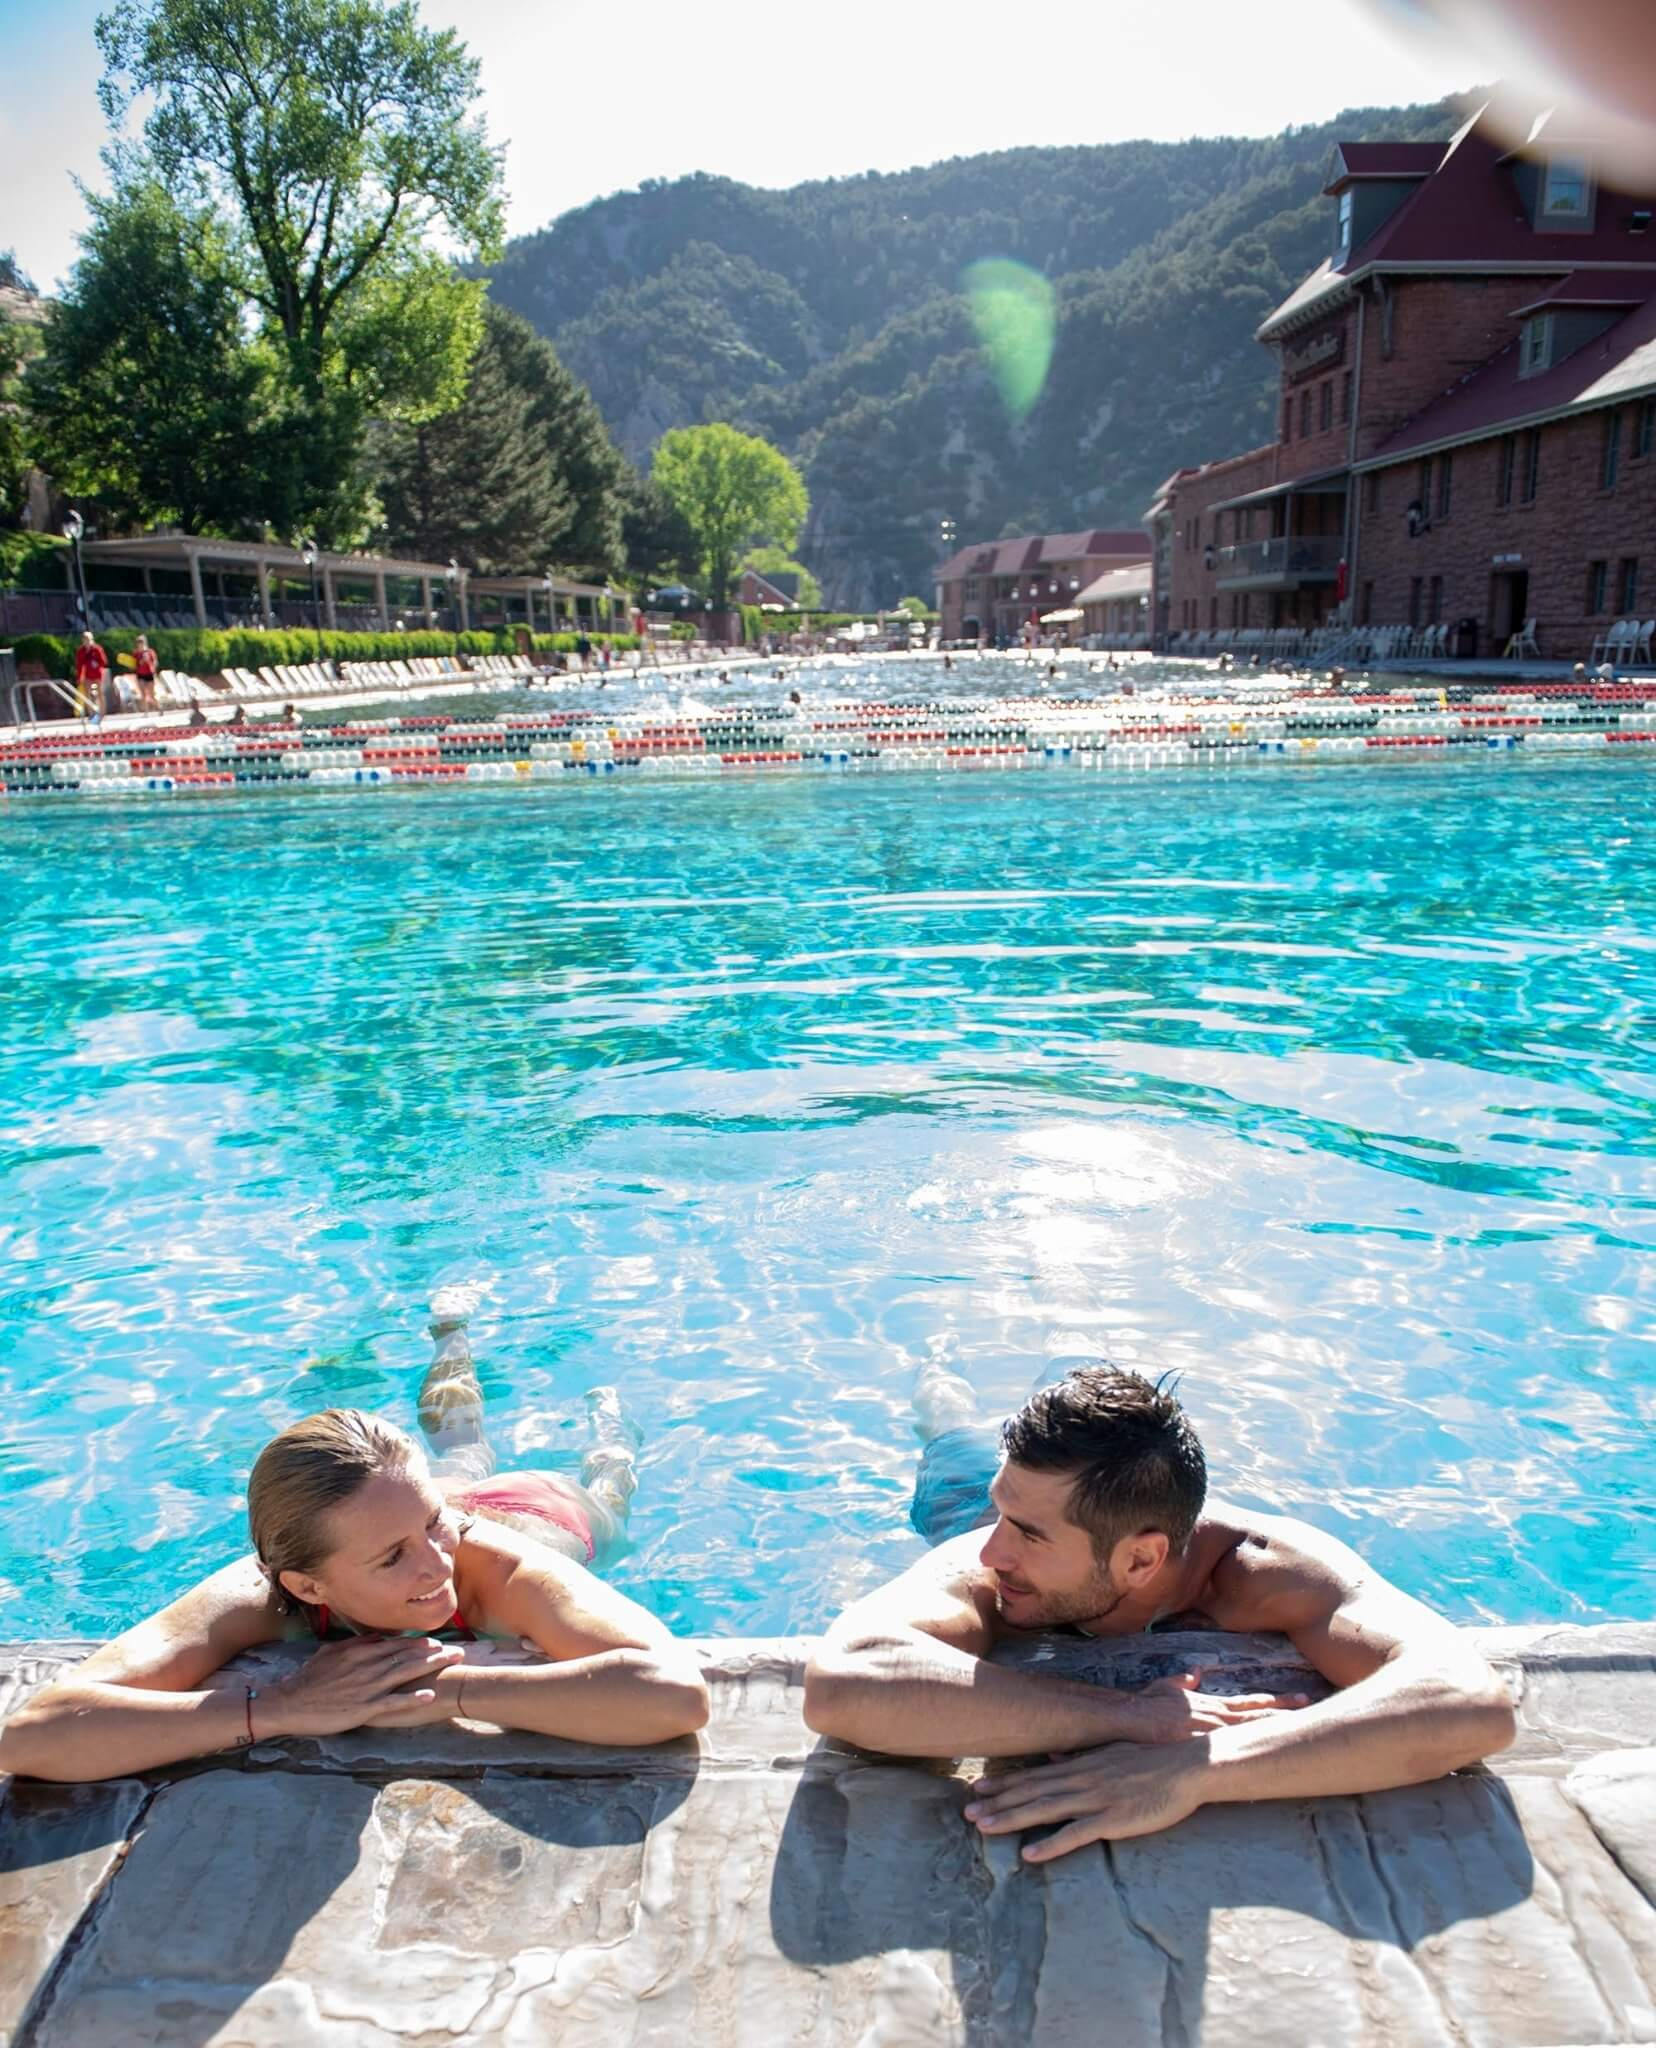 a nice summer's day at Glenwood Hot Springs